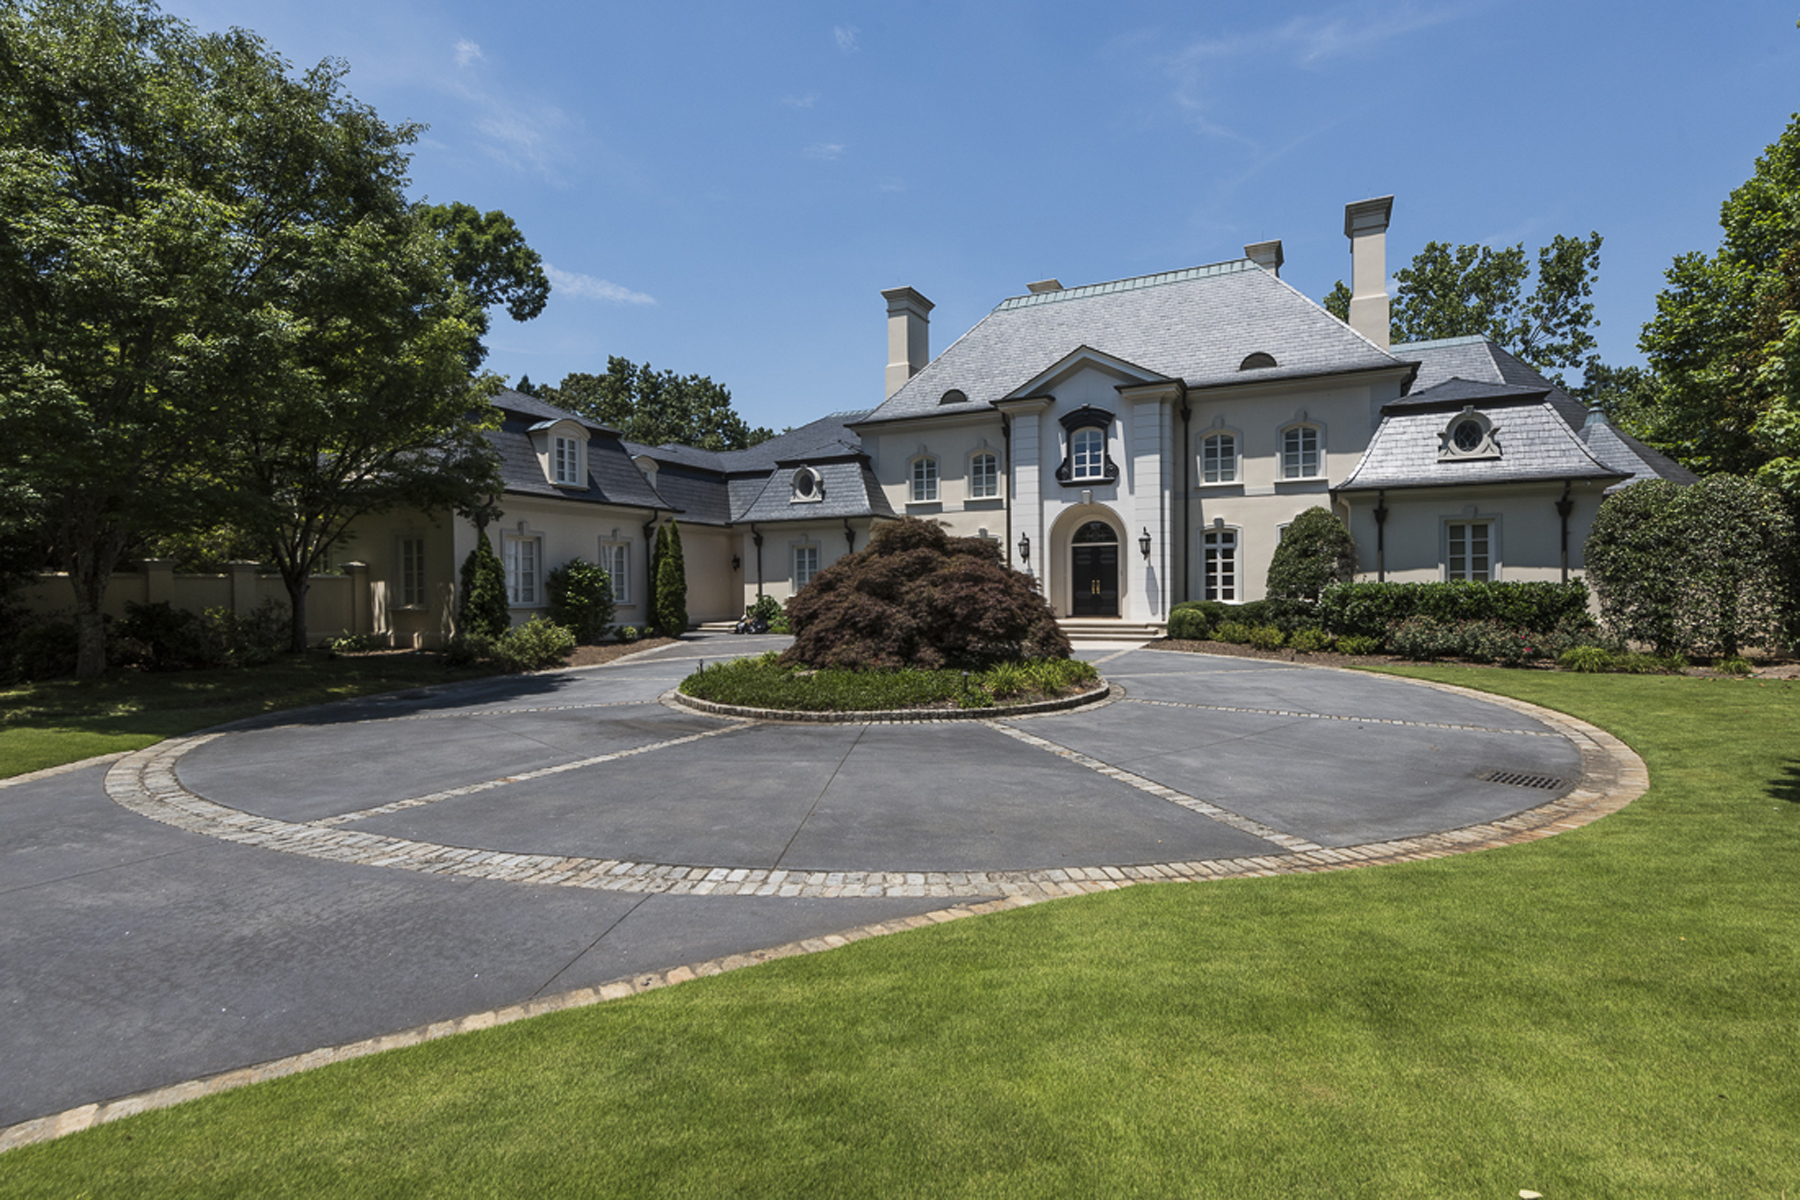 一戸建て のために 売買 アット Fabulous Entertaining Home On Three Acres In Premier Guard Gated Community 125 Wilderbluff Court Sandy Springs, ジョージア 30328 アメリカ合衆国